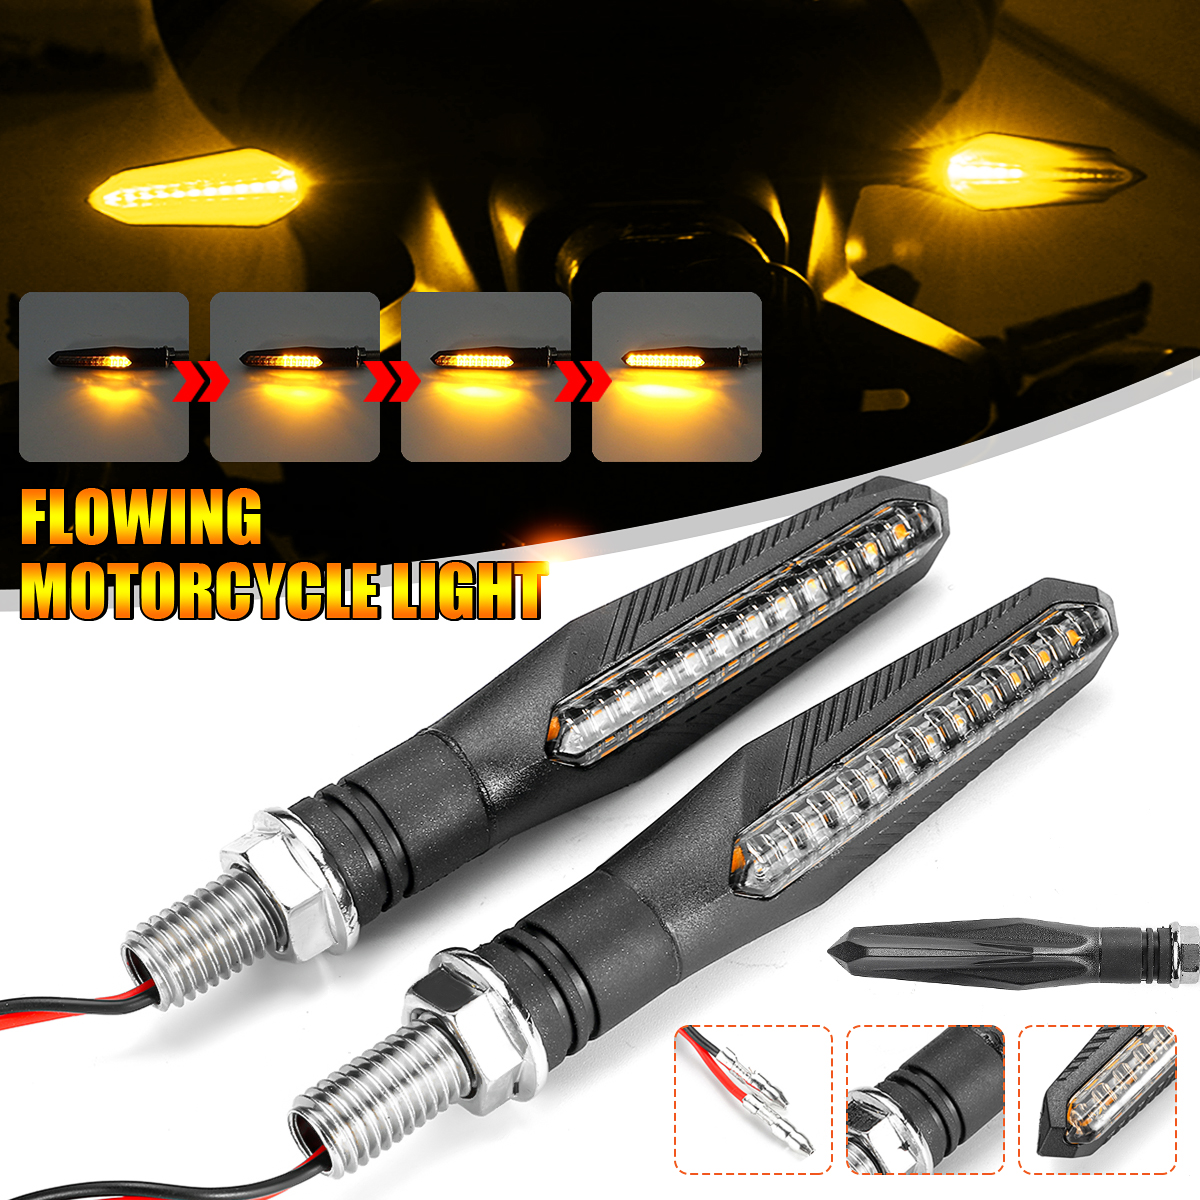 12V Universal Flowing Motorcycle LED Turn Signal Indicator Amber Lights